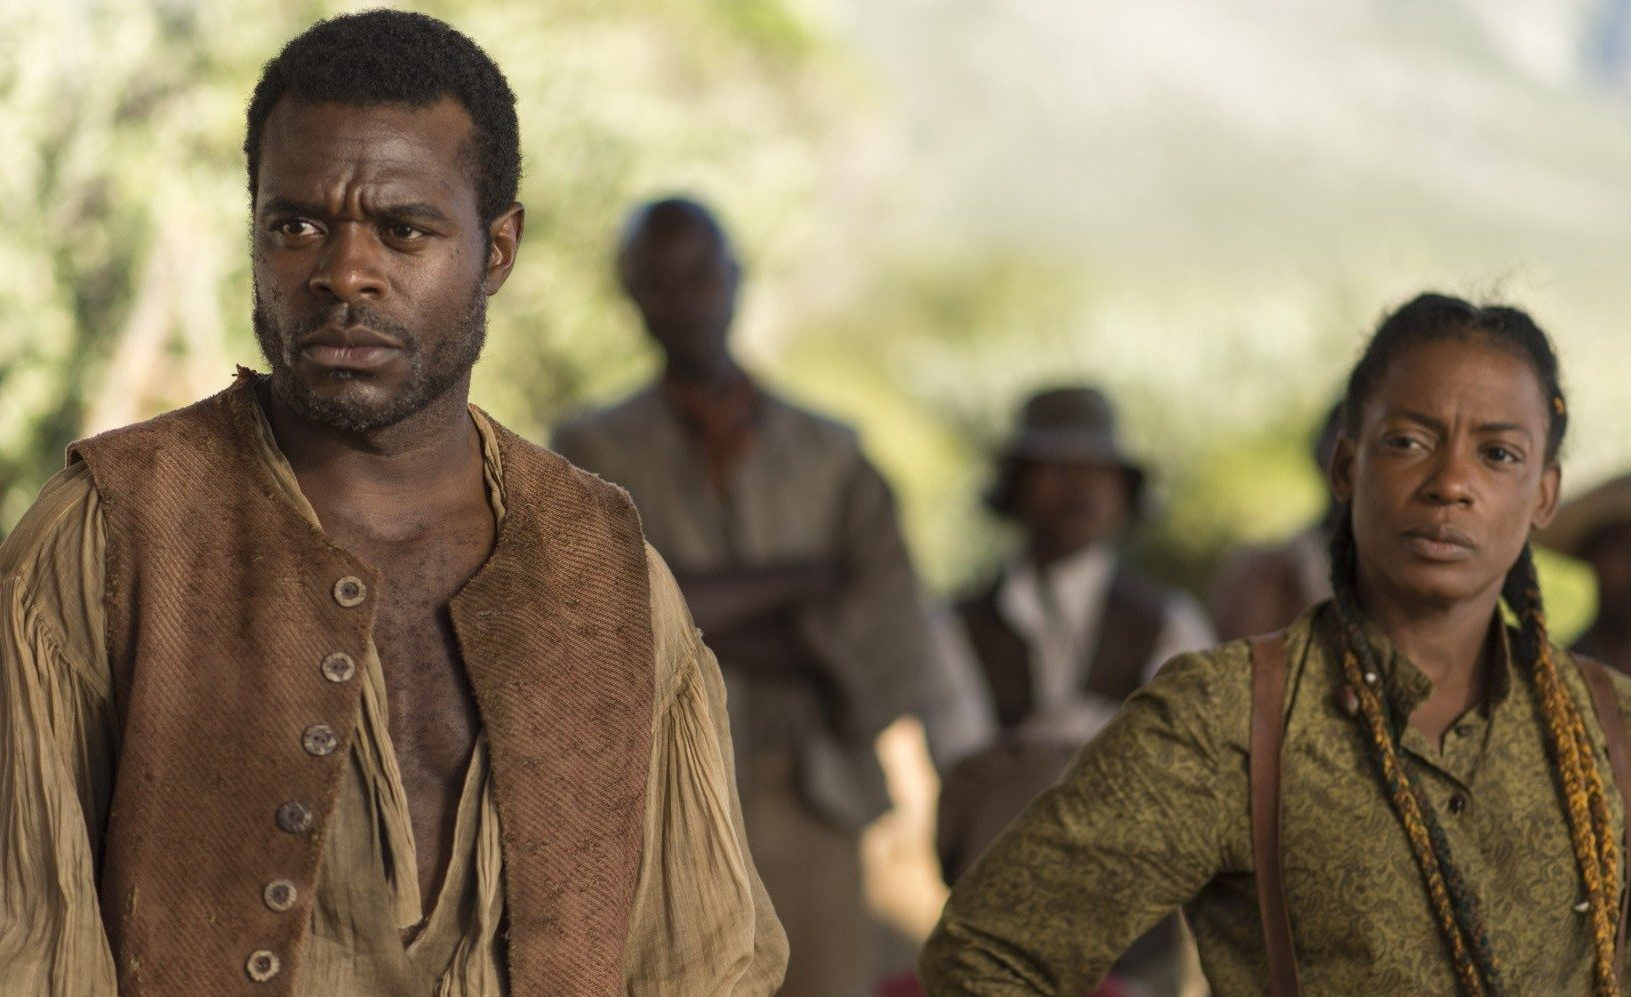 Book-of-Negroes-2